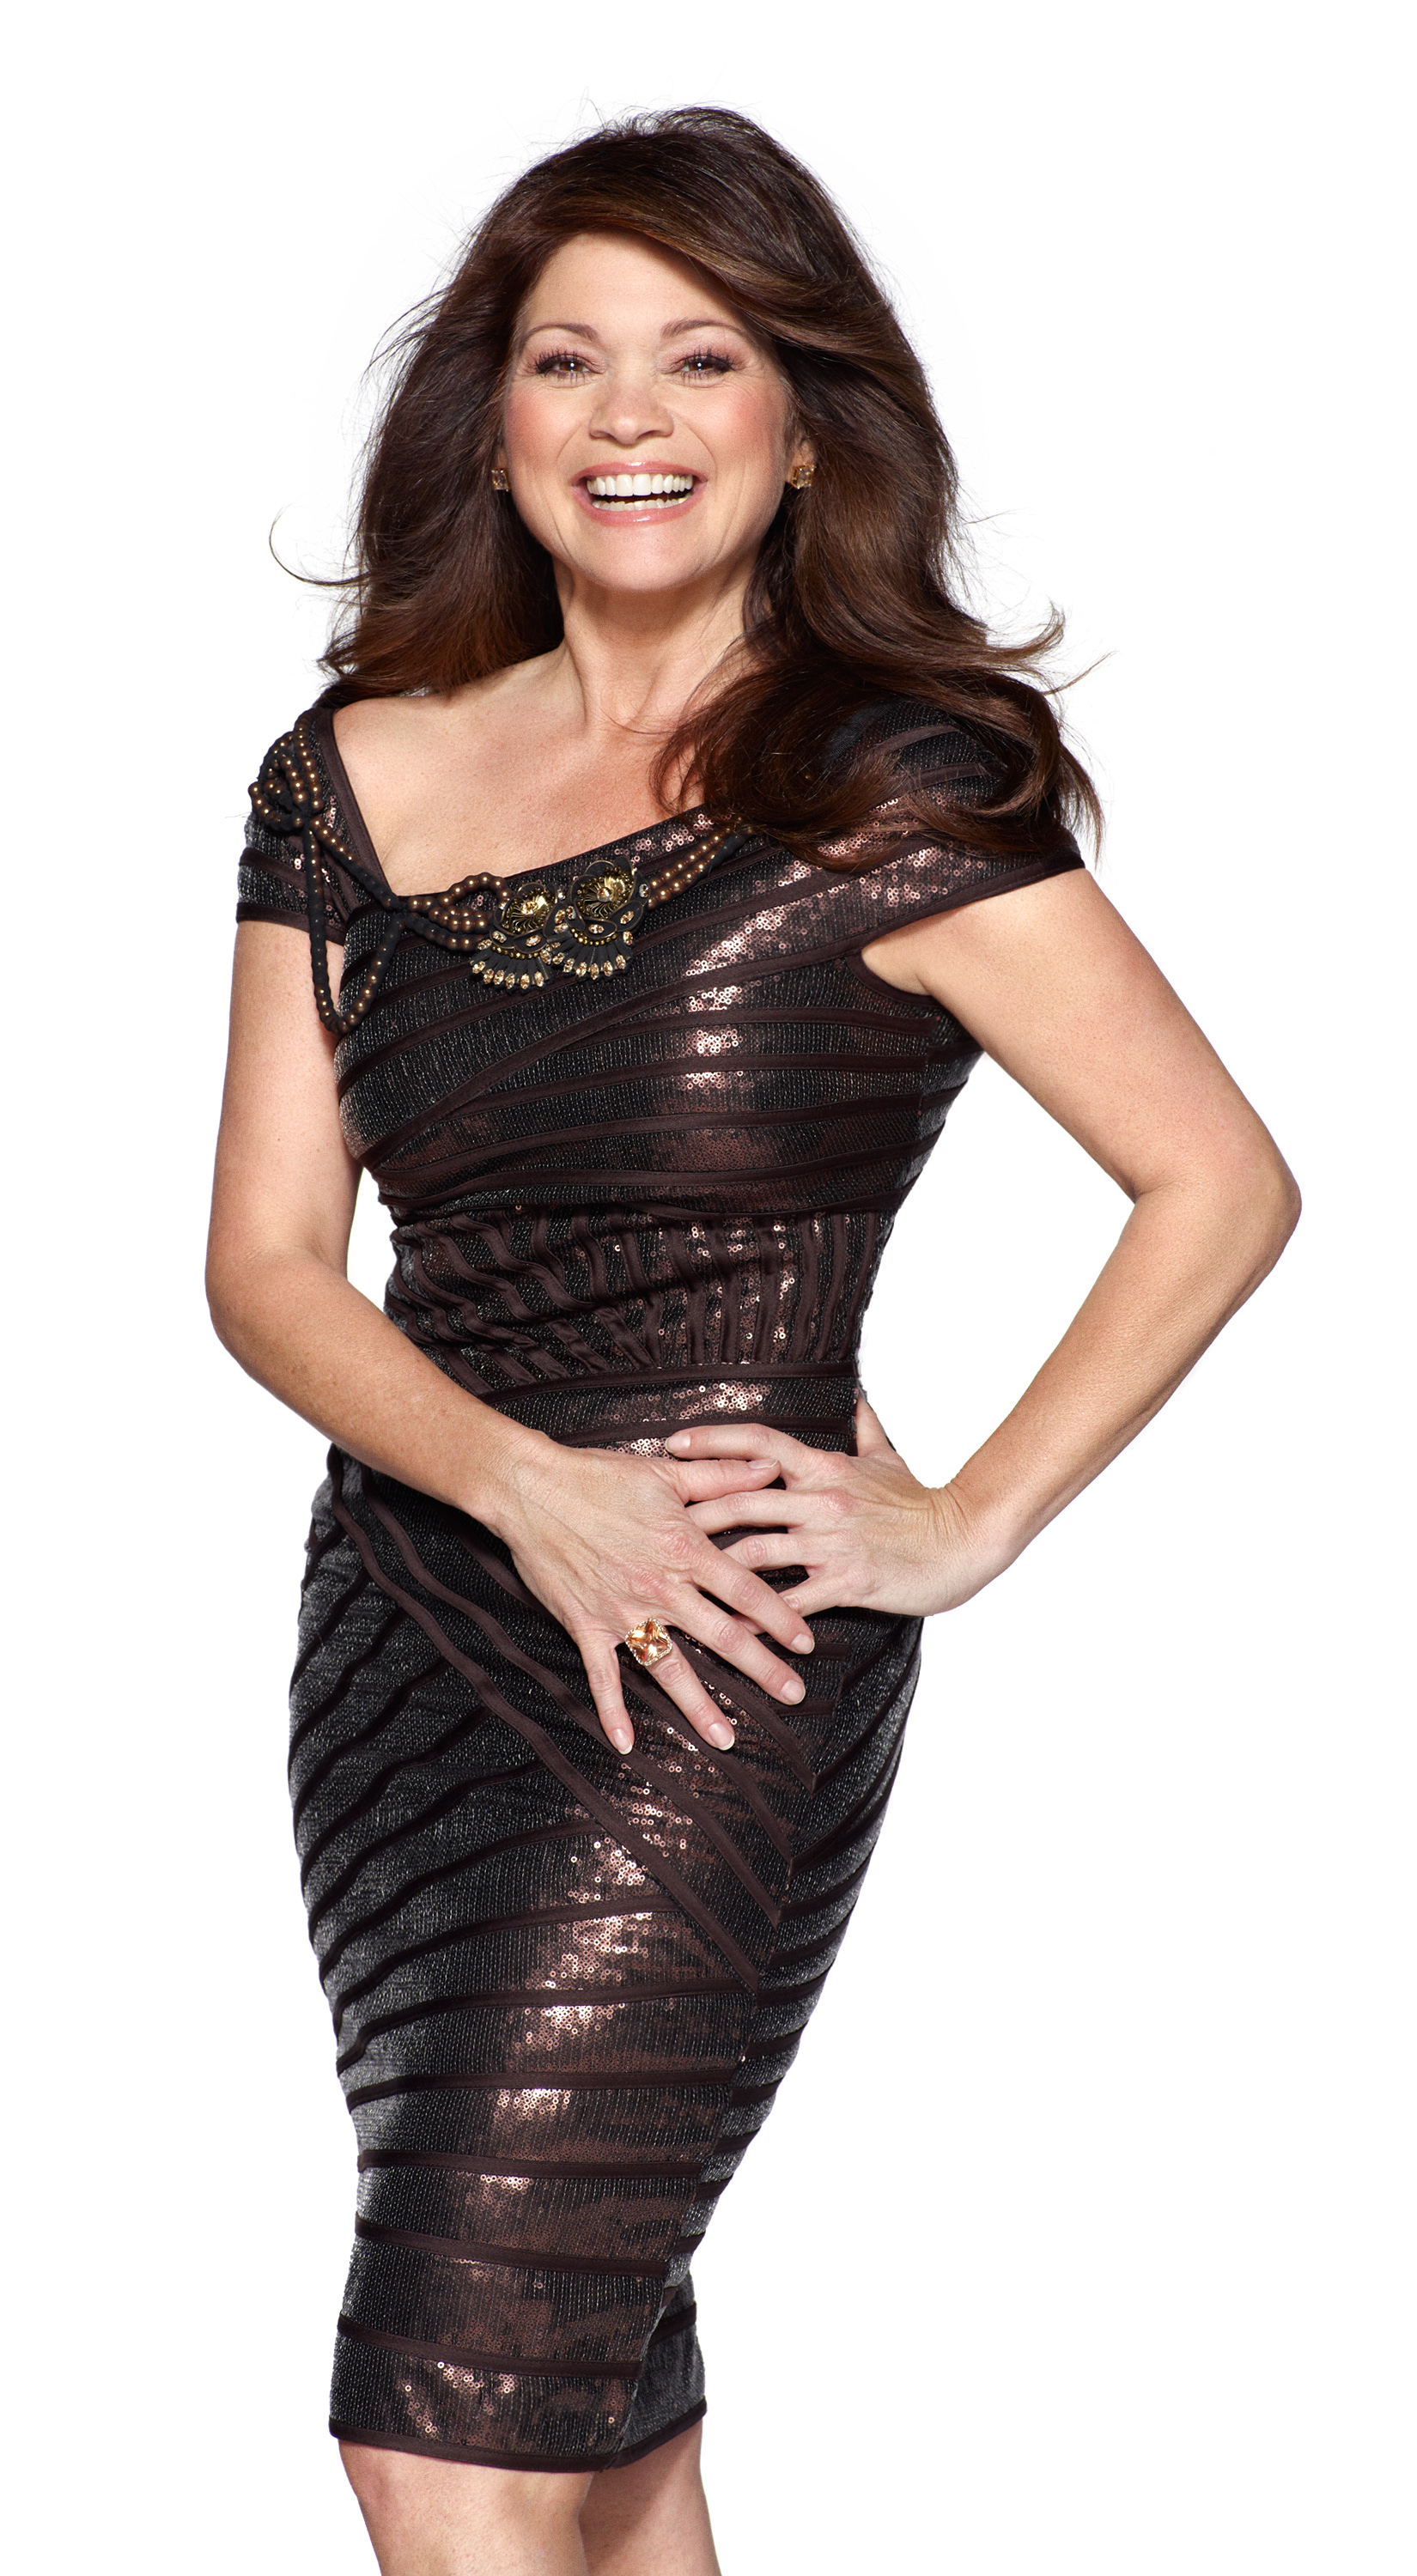 image hot in cleveland s2 valerie hot